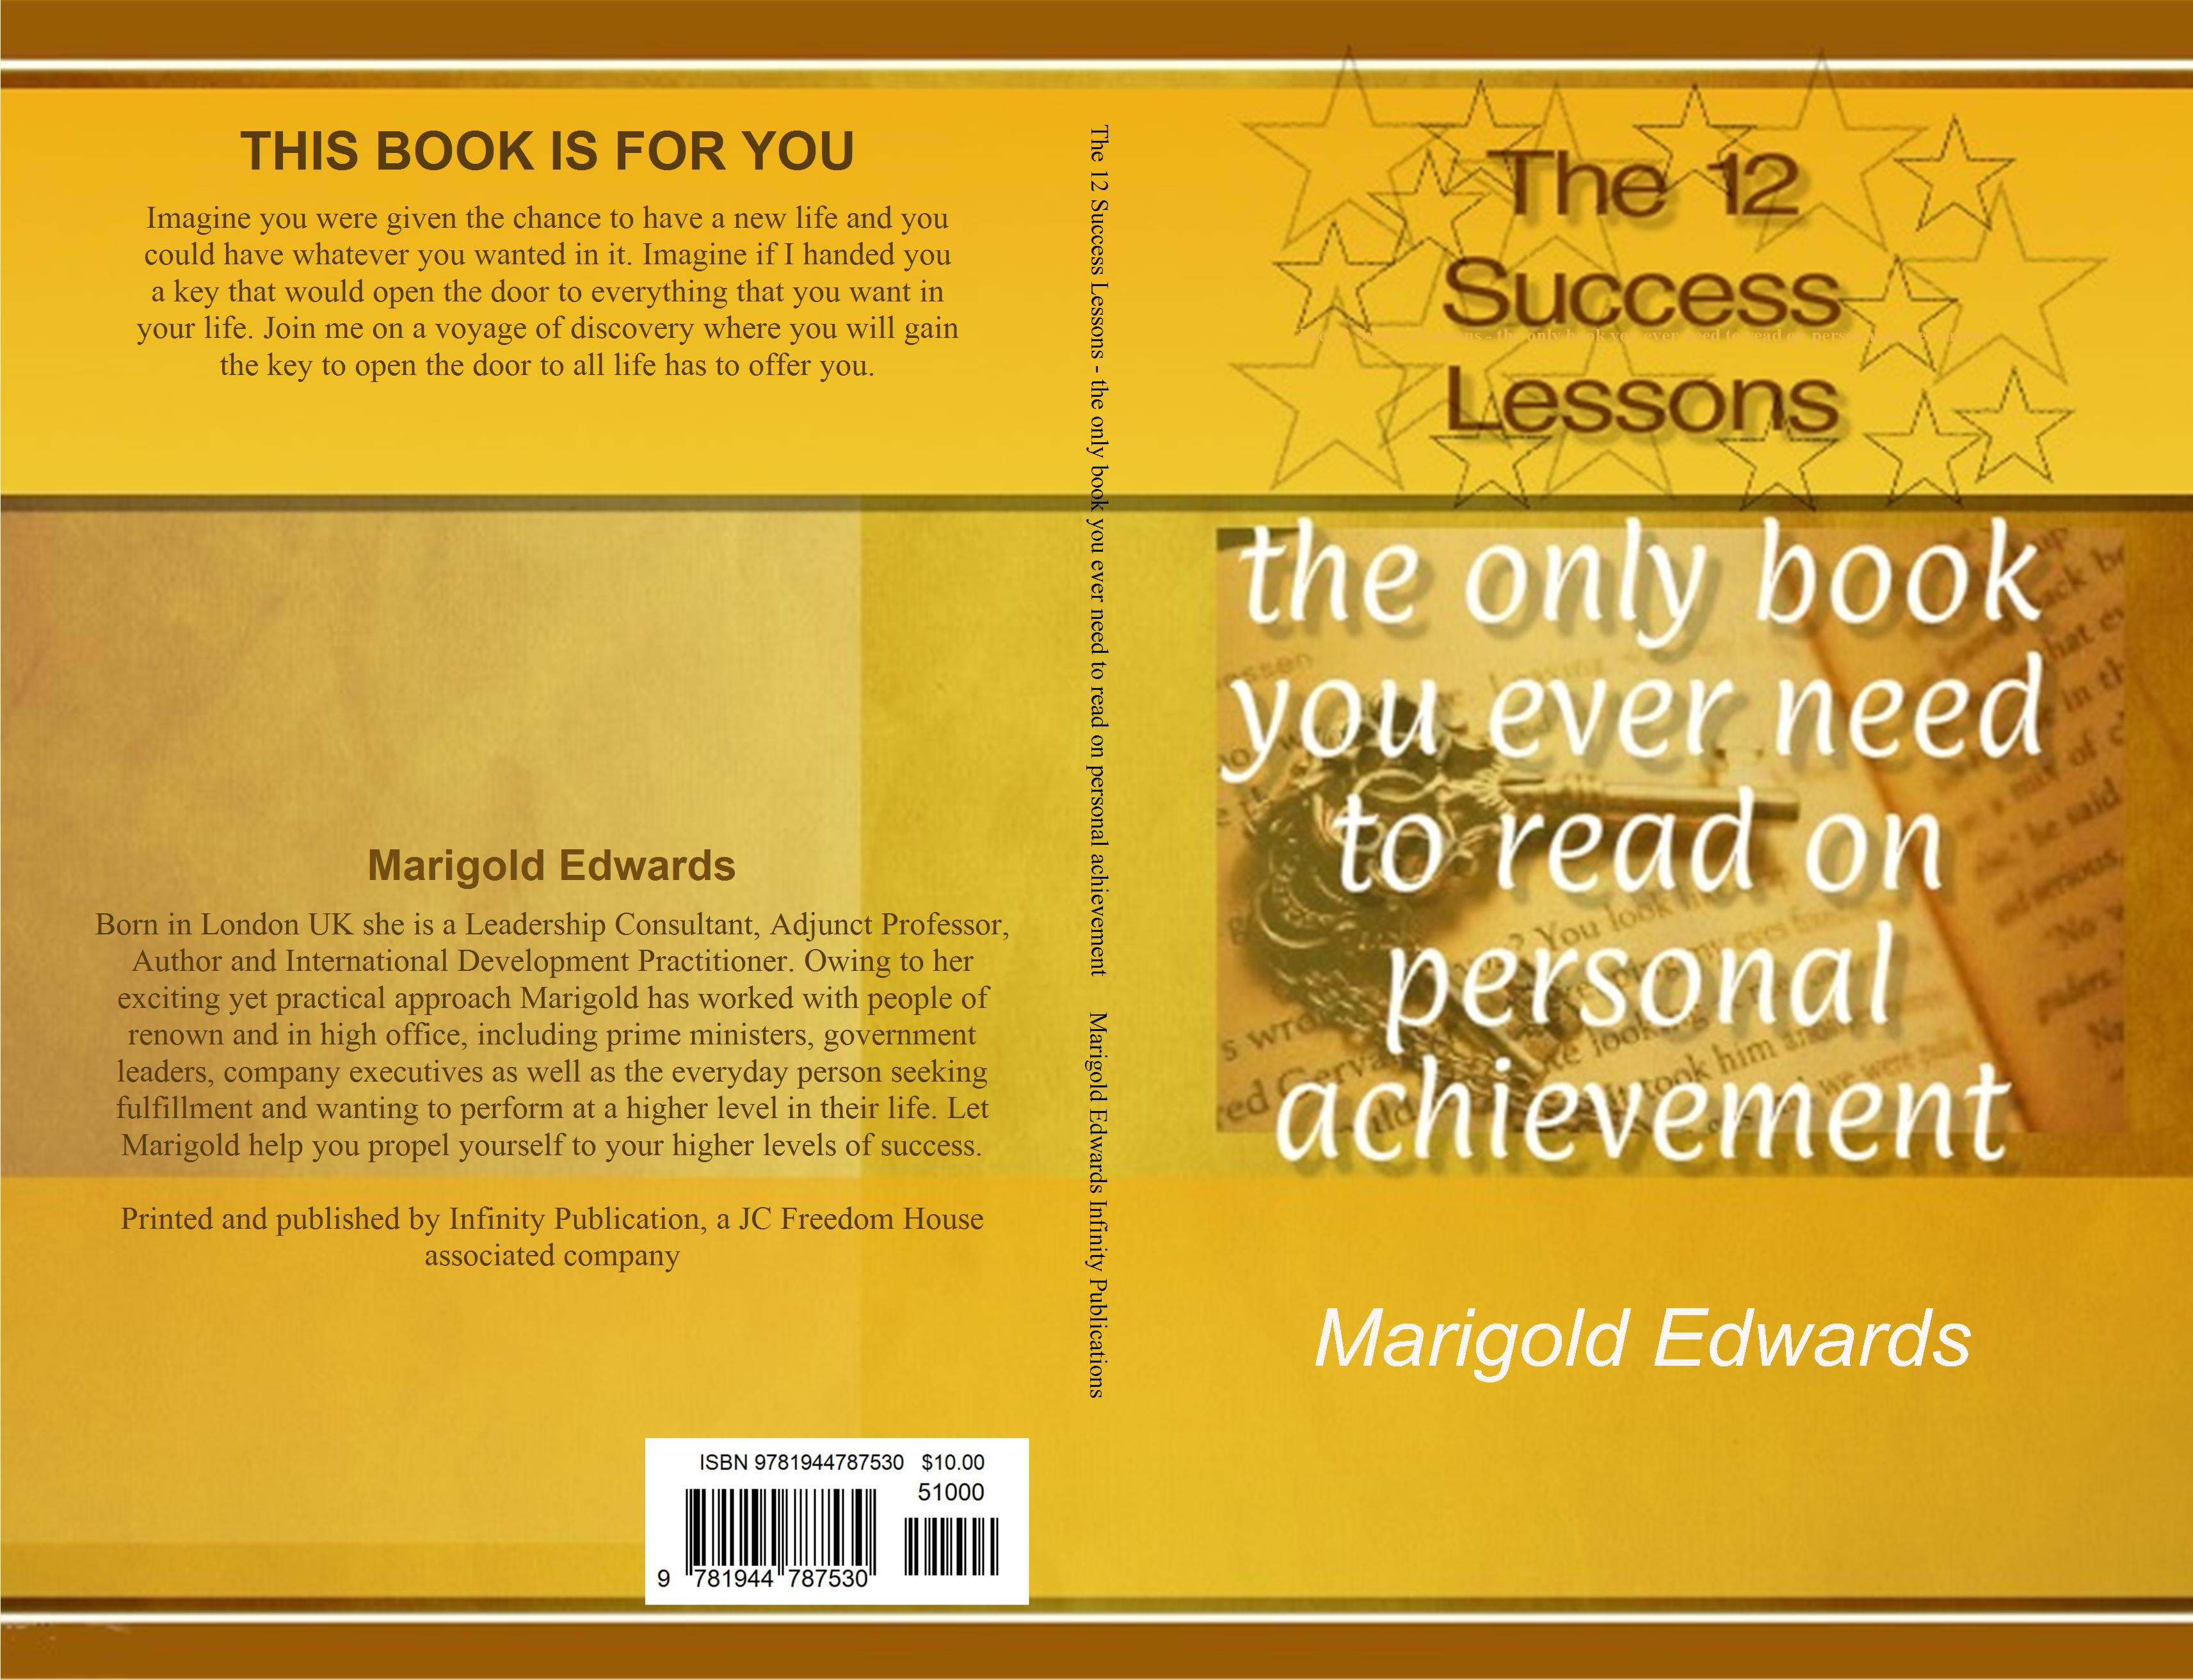 The 12 Success Lessons - the only book you ever need to read on personal achievement cover image